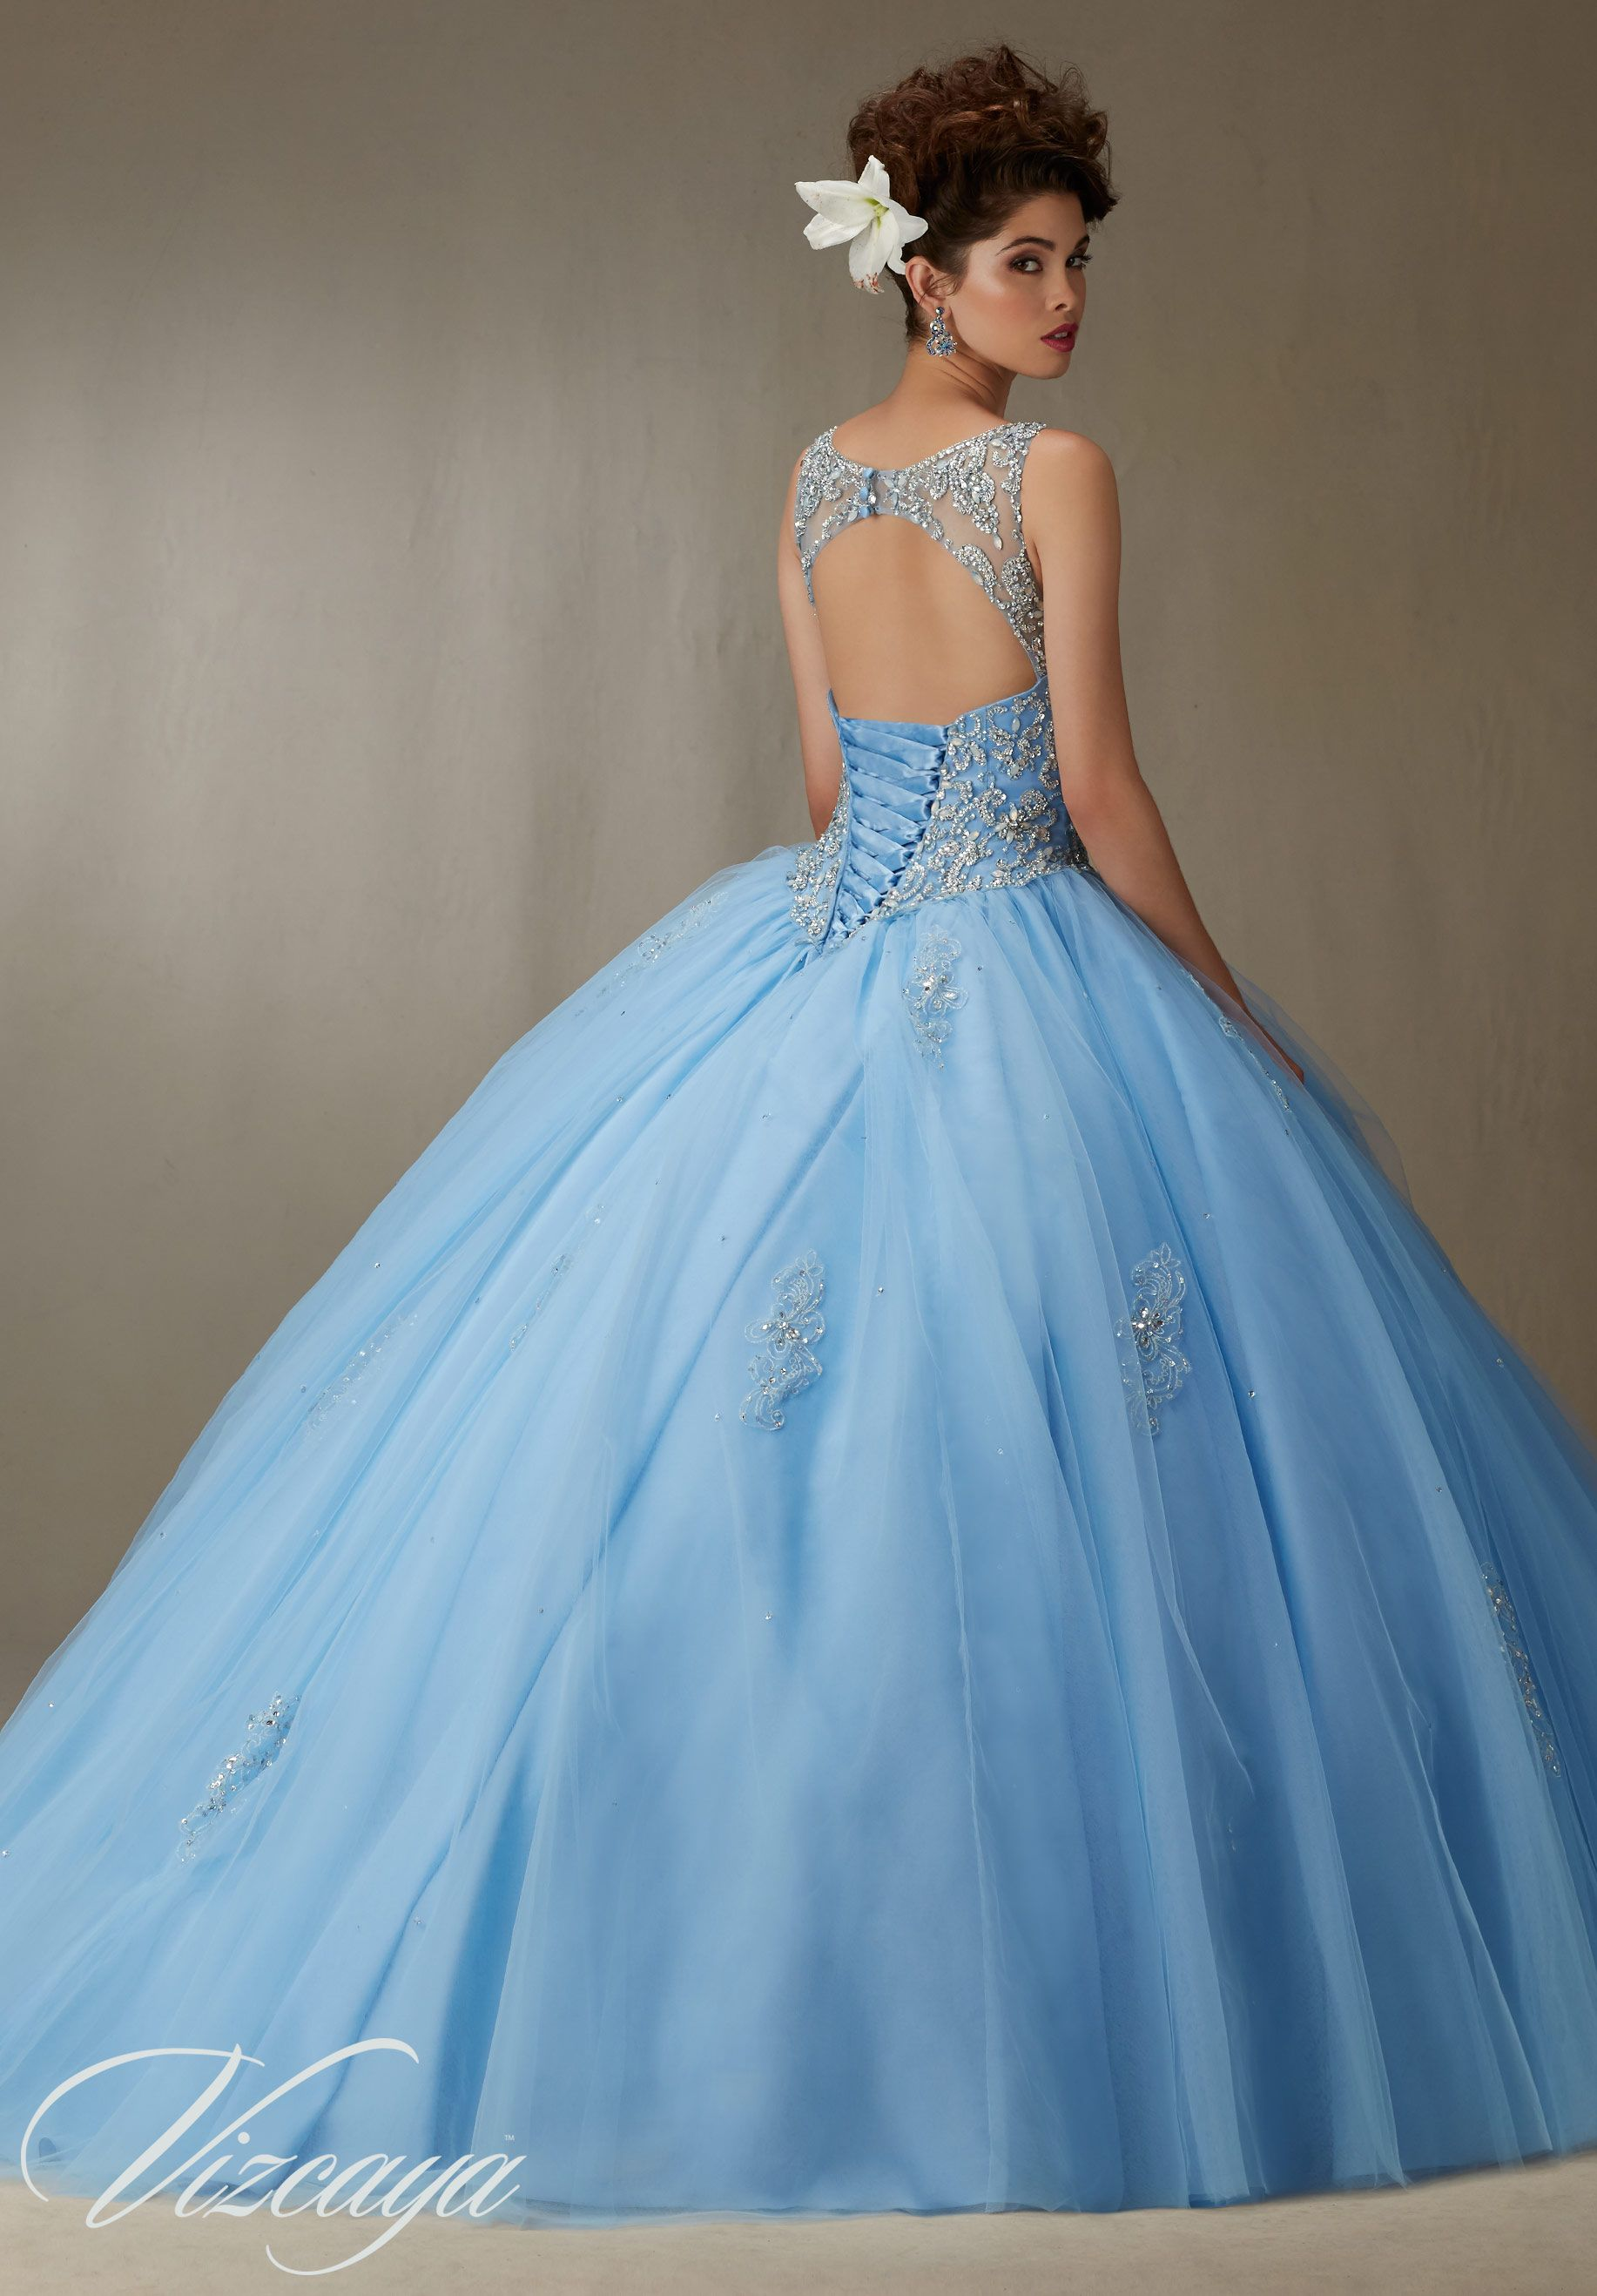 Embroidery and Beading on a Tulle Ball Gown Quinceañera Dress ... 4efd1c746178